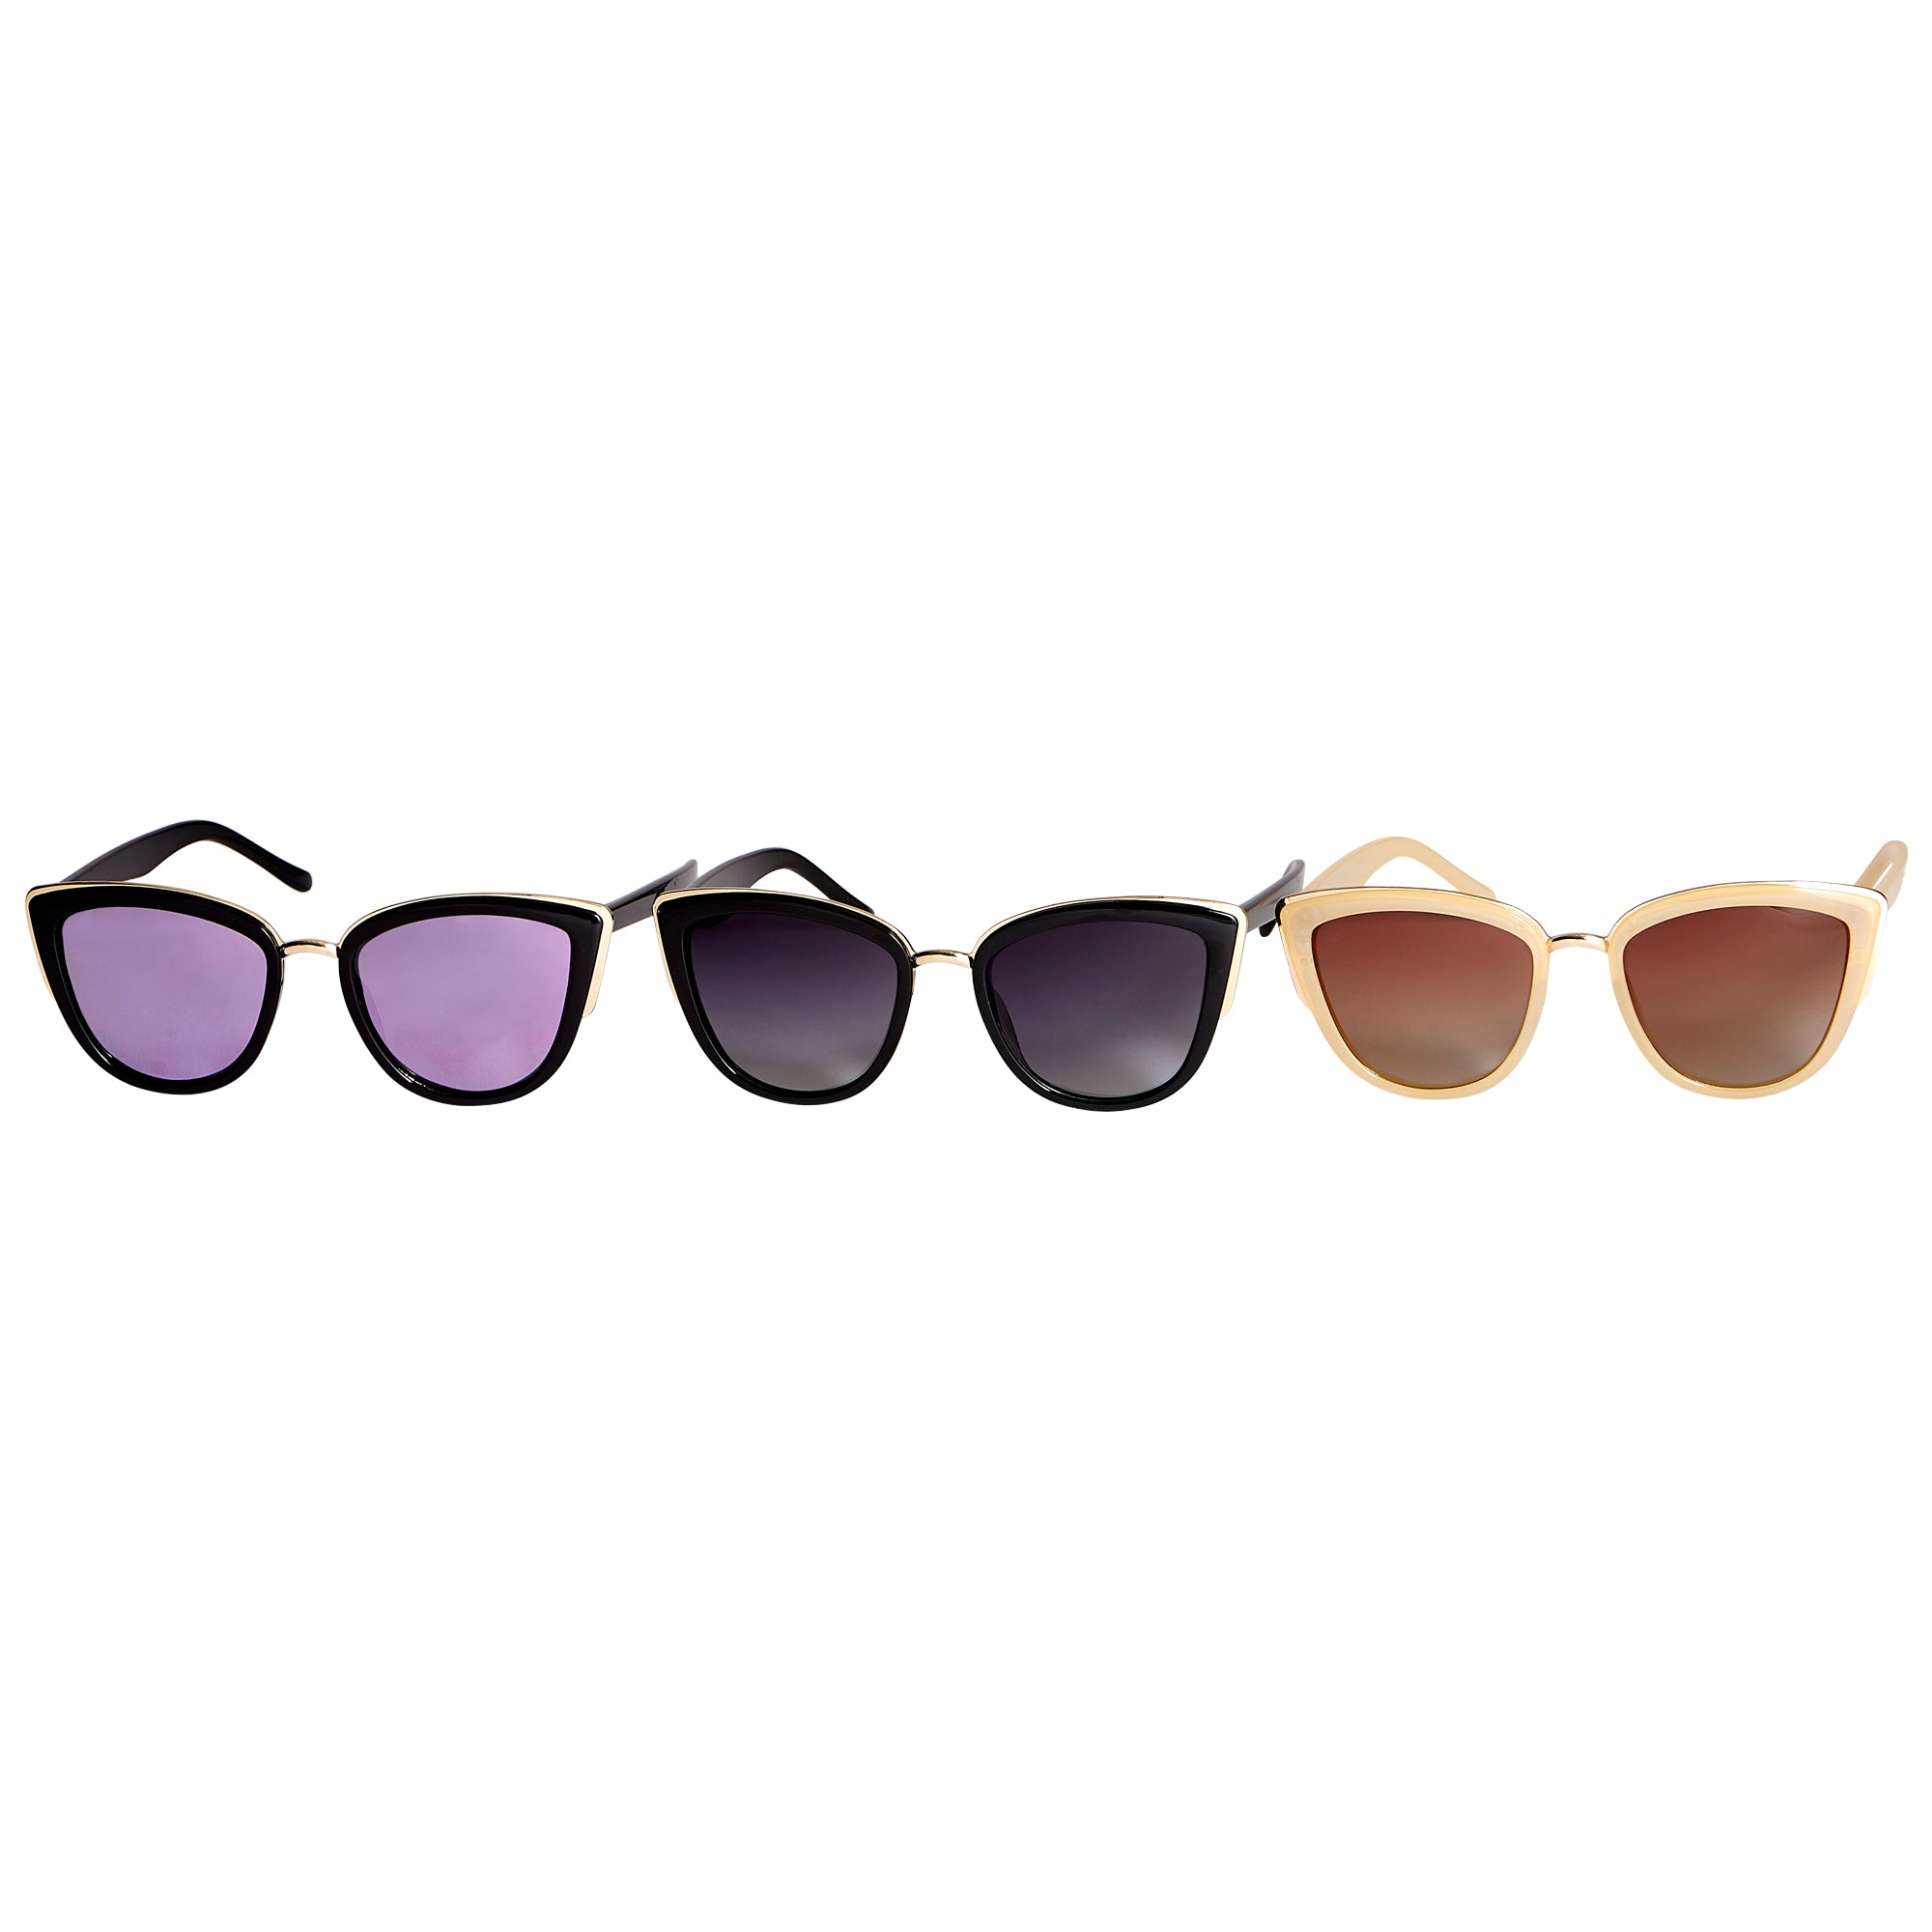 1b83a5348ac Wholesale Boutique Gifts - Kristin Polarized Cat Eye Sunglasses 3 Pack - Tickled  Pink